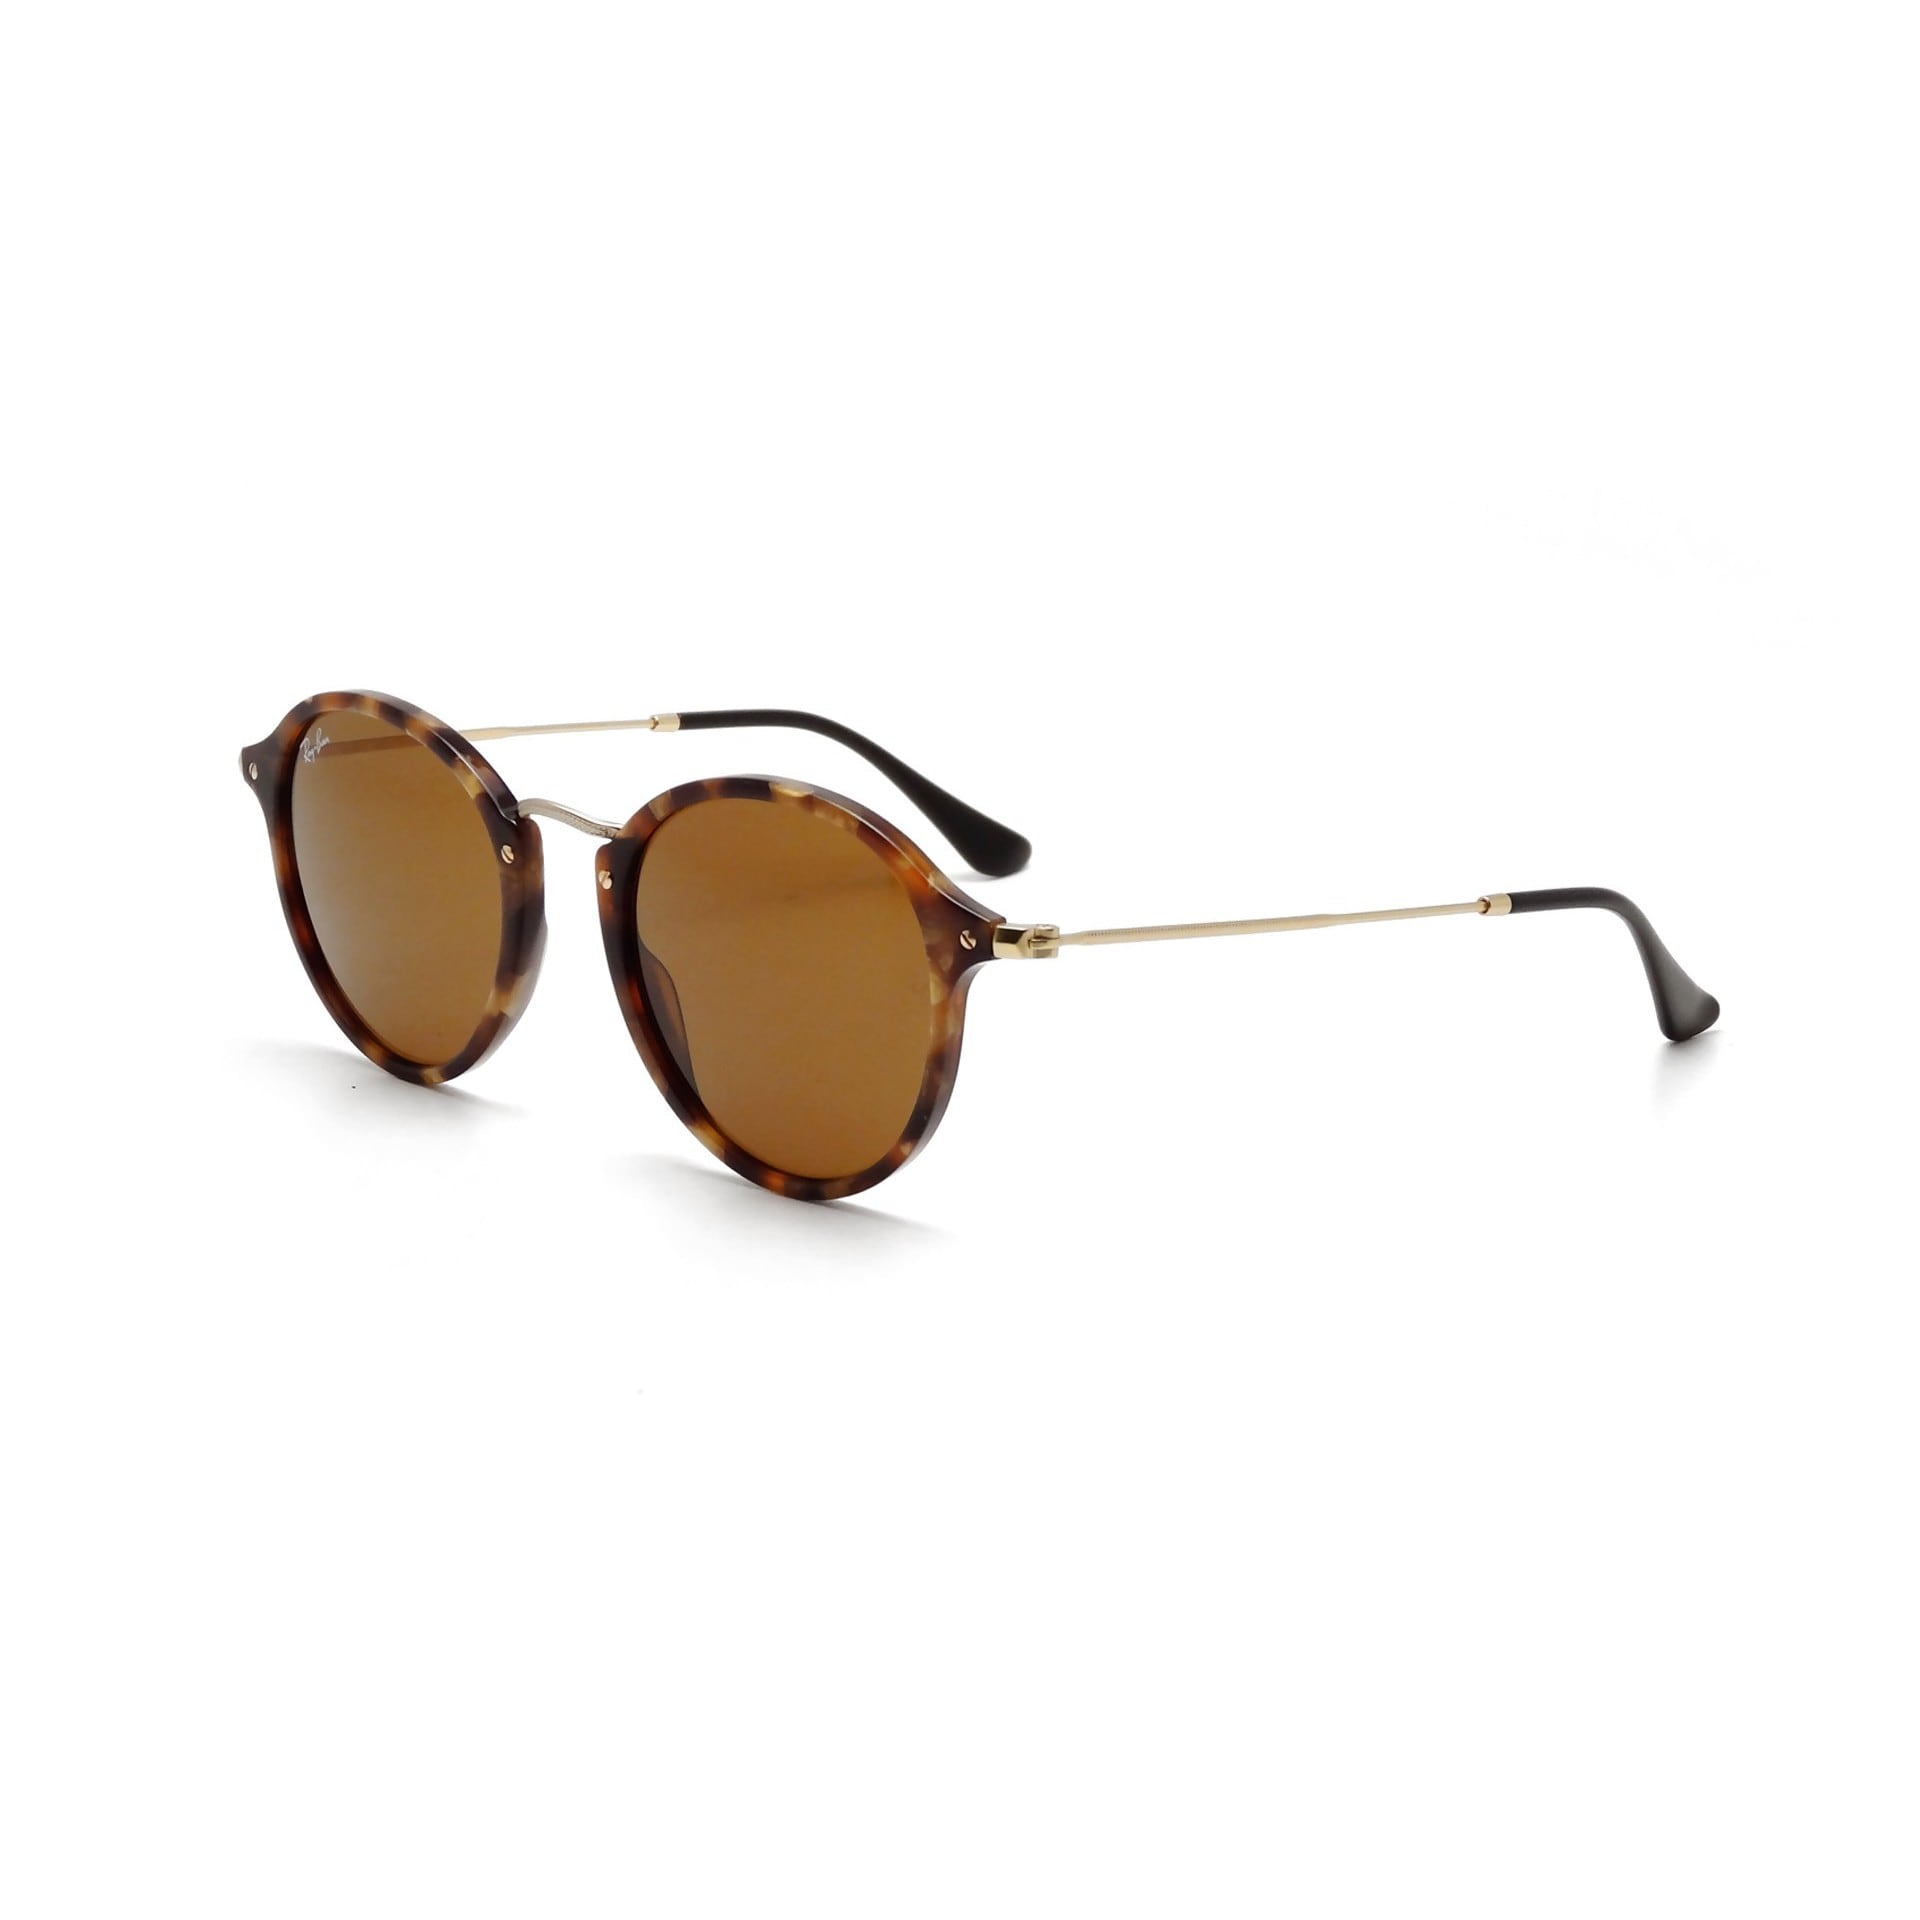 207f8fa7ba Shop Ray-Ban RB2447 1160 Men s Round Fleck Tortoise Gold Frame Brown  Classic 49-millimeter Lens Sunglasses - Free Shipping Today - Overstock -  12392779